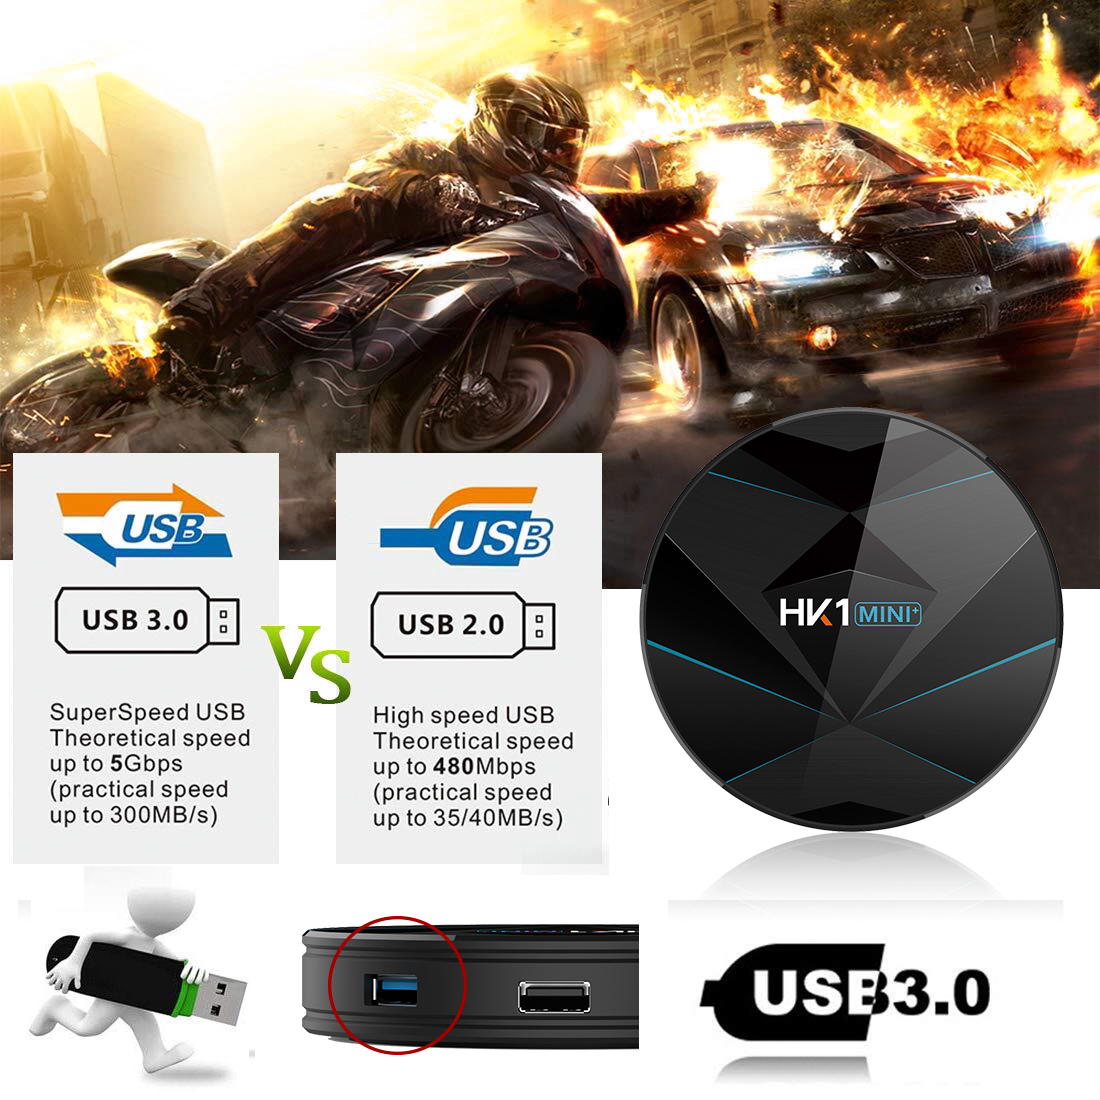 HK1 Mini 4G Ram 32GB ROM 4K HD Dual WIFI Android TV Box